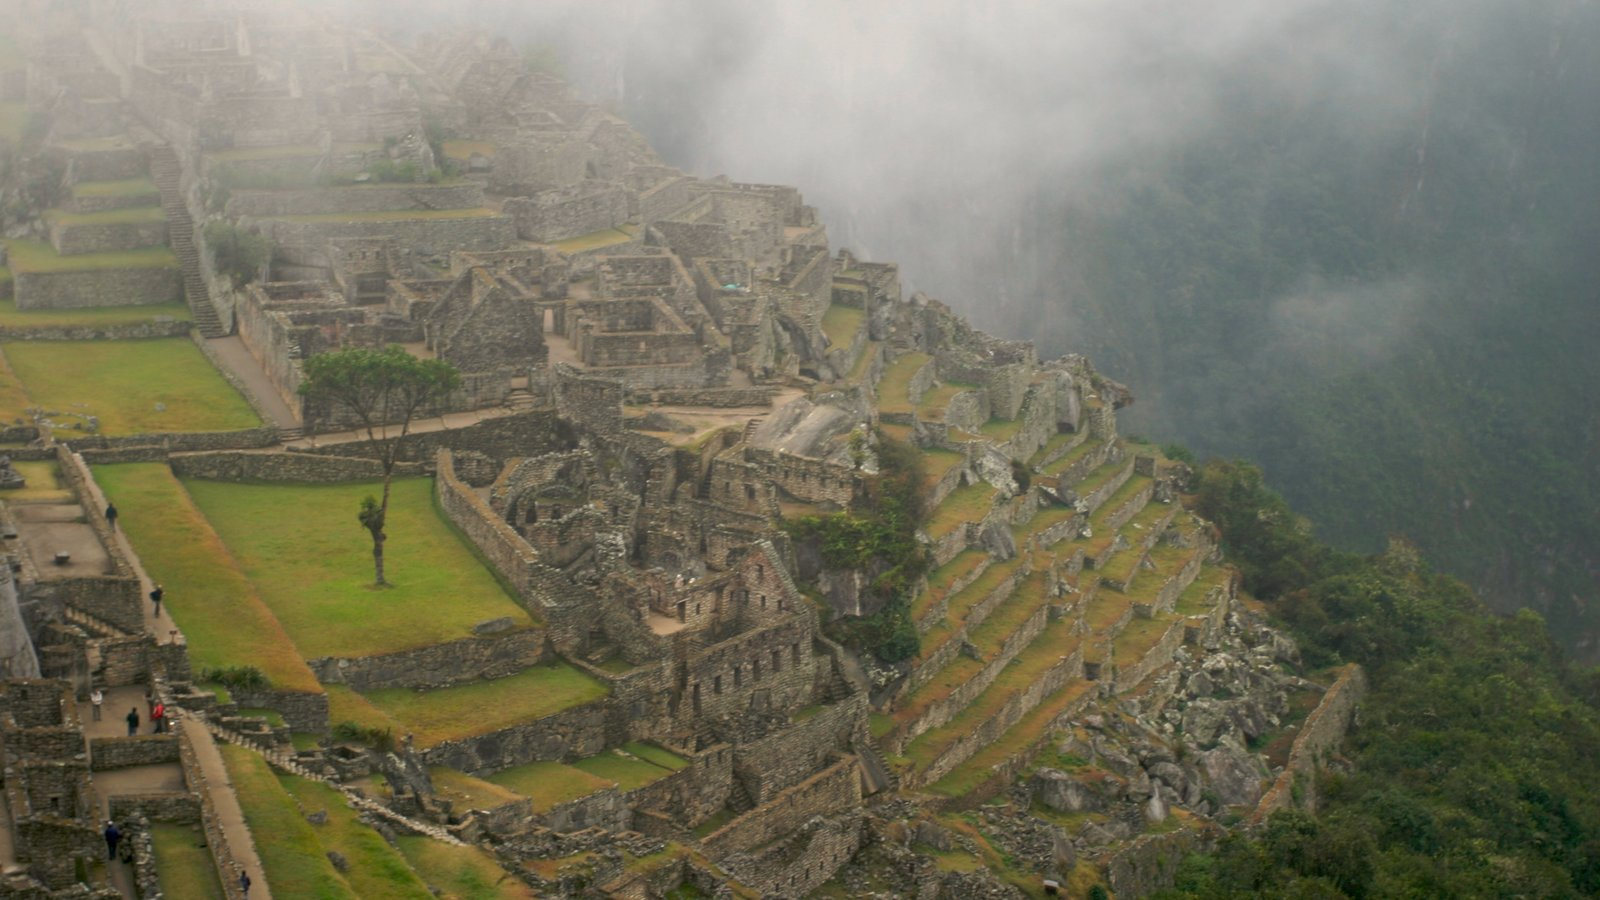 Machu Picchu showing mountains, a ruin and mist or fog